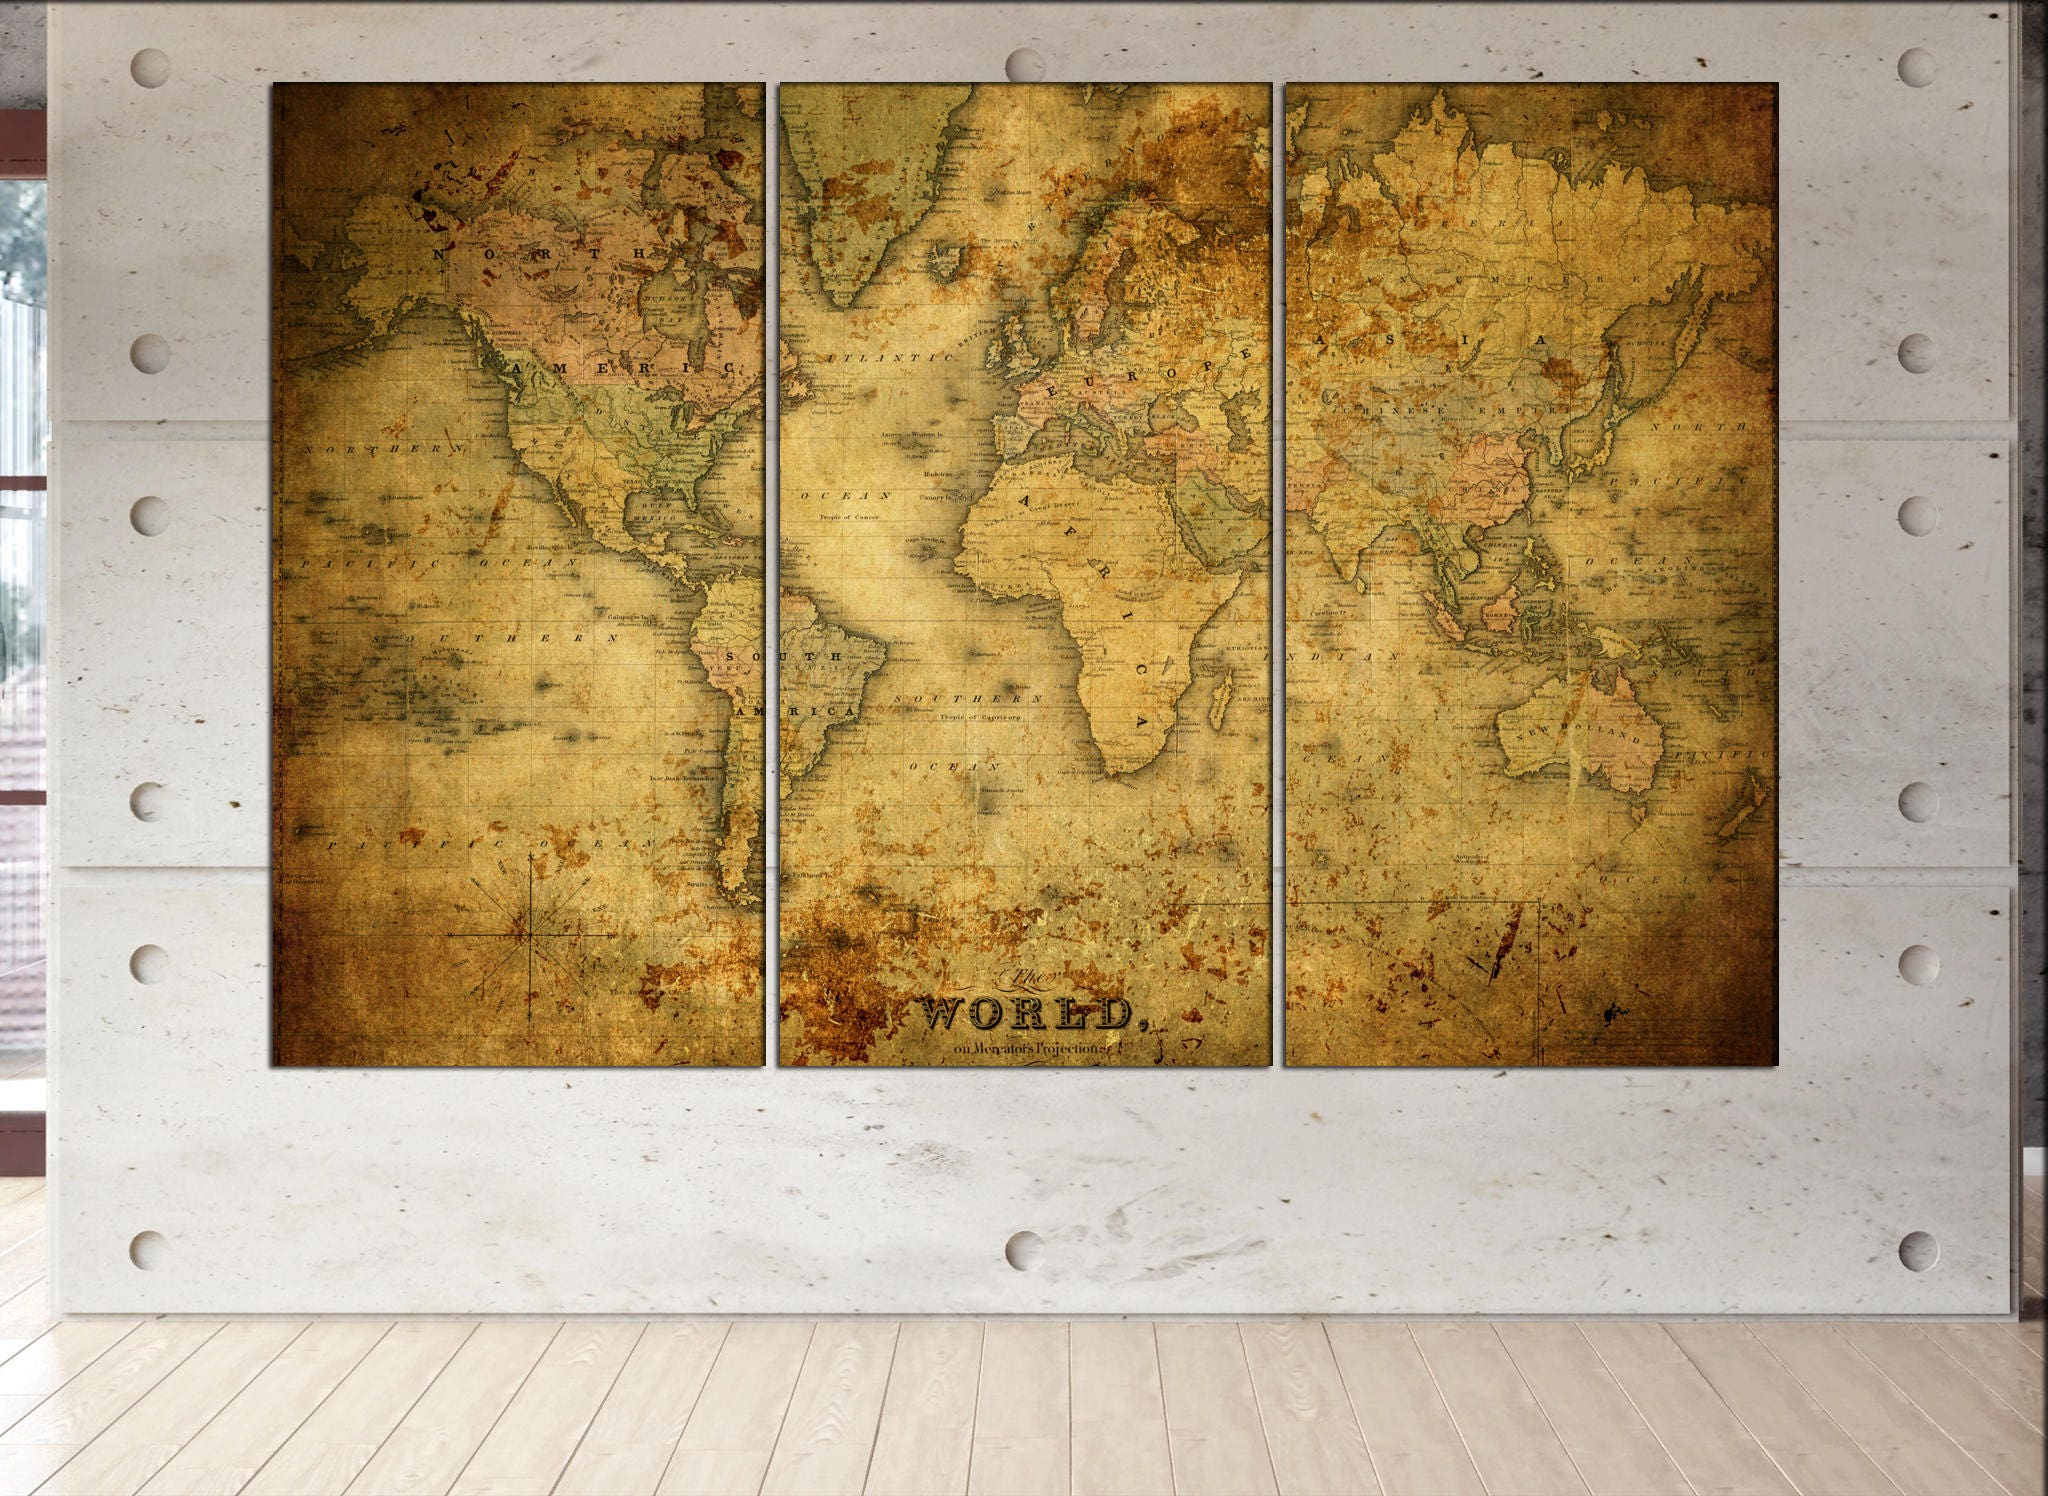 Old world map canvas wall art print on canvas wall art old world map old world map canvas wall art print on canvas wall art old world map historic map antique style world map art work artwork office decor gumiabroncs Image collections